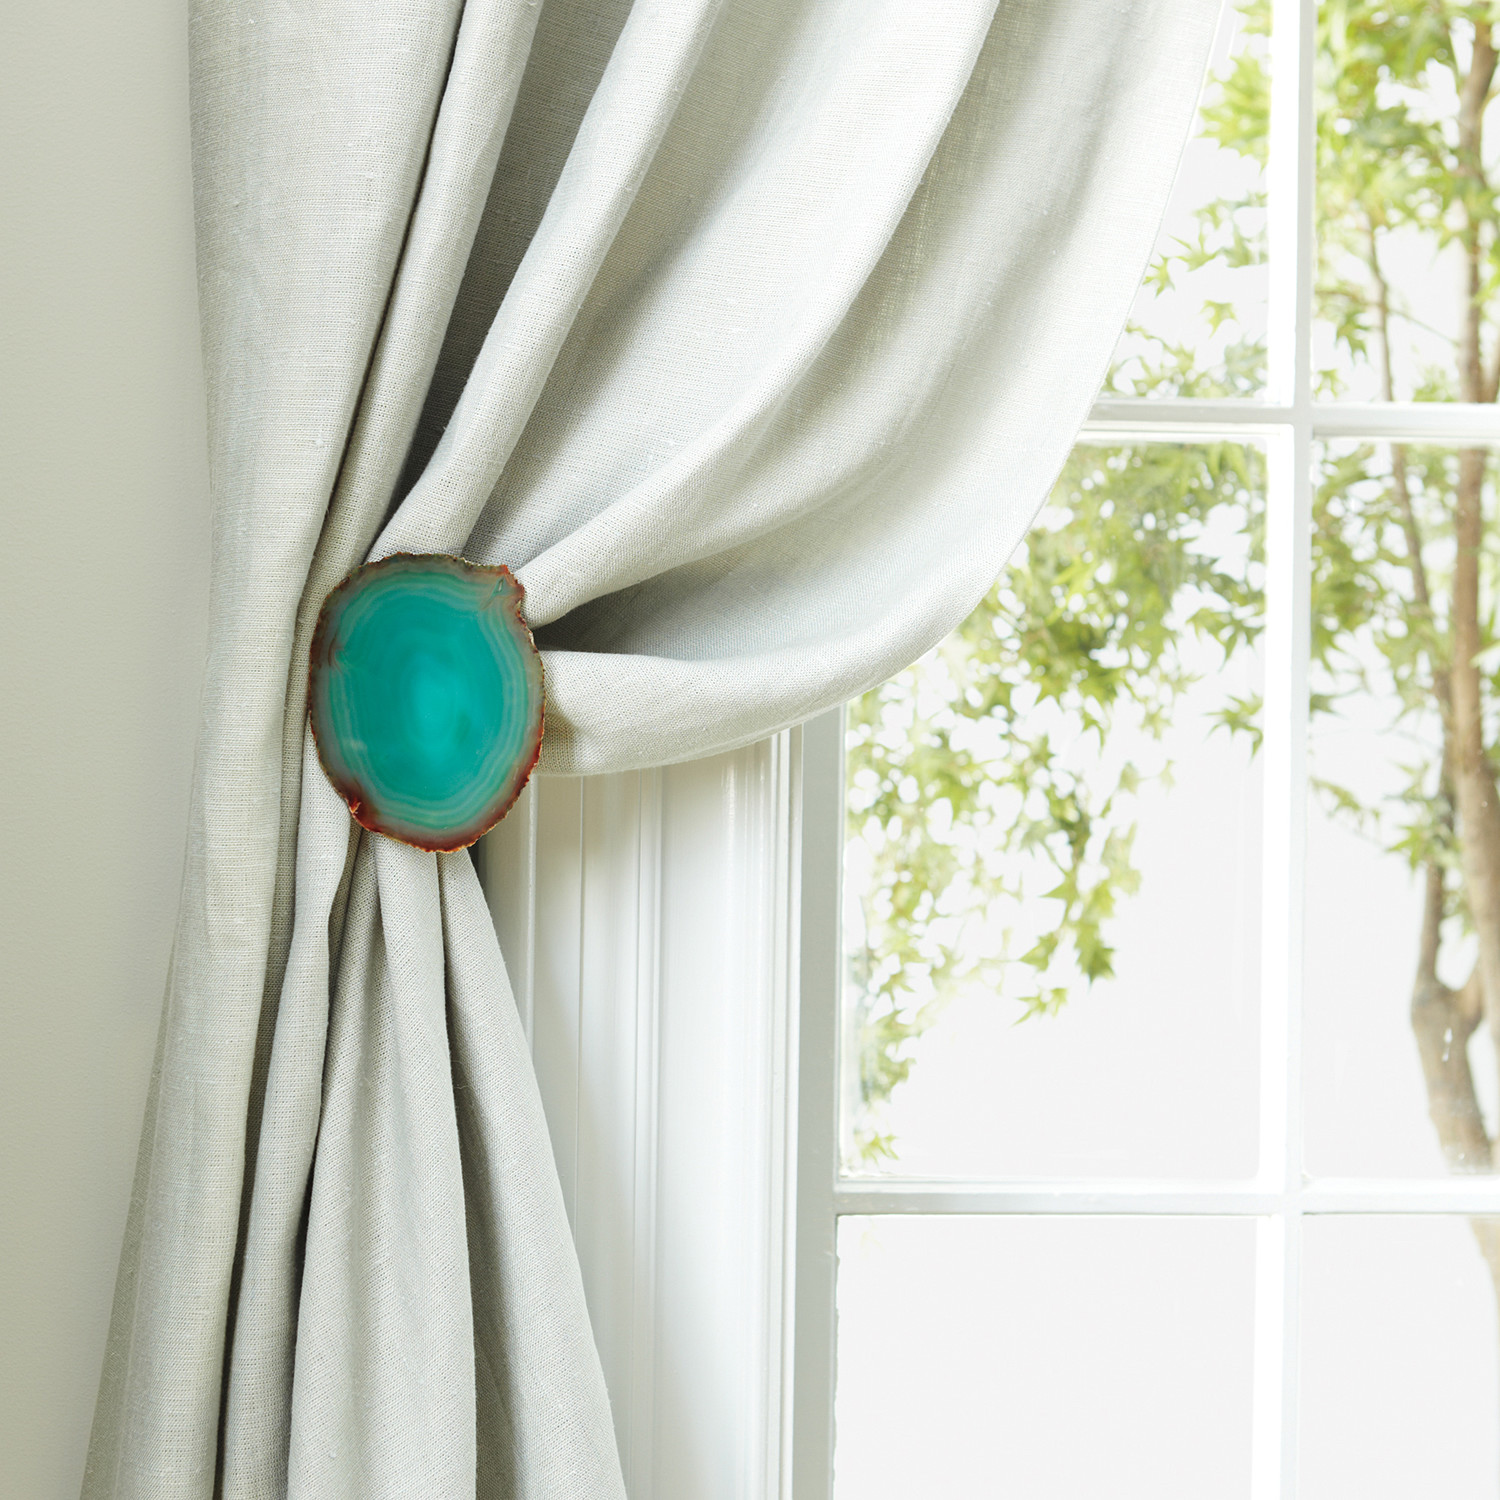 How to place curtain holdbacks curtain menzilperdenet for Curtain tie backs placement